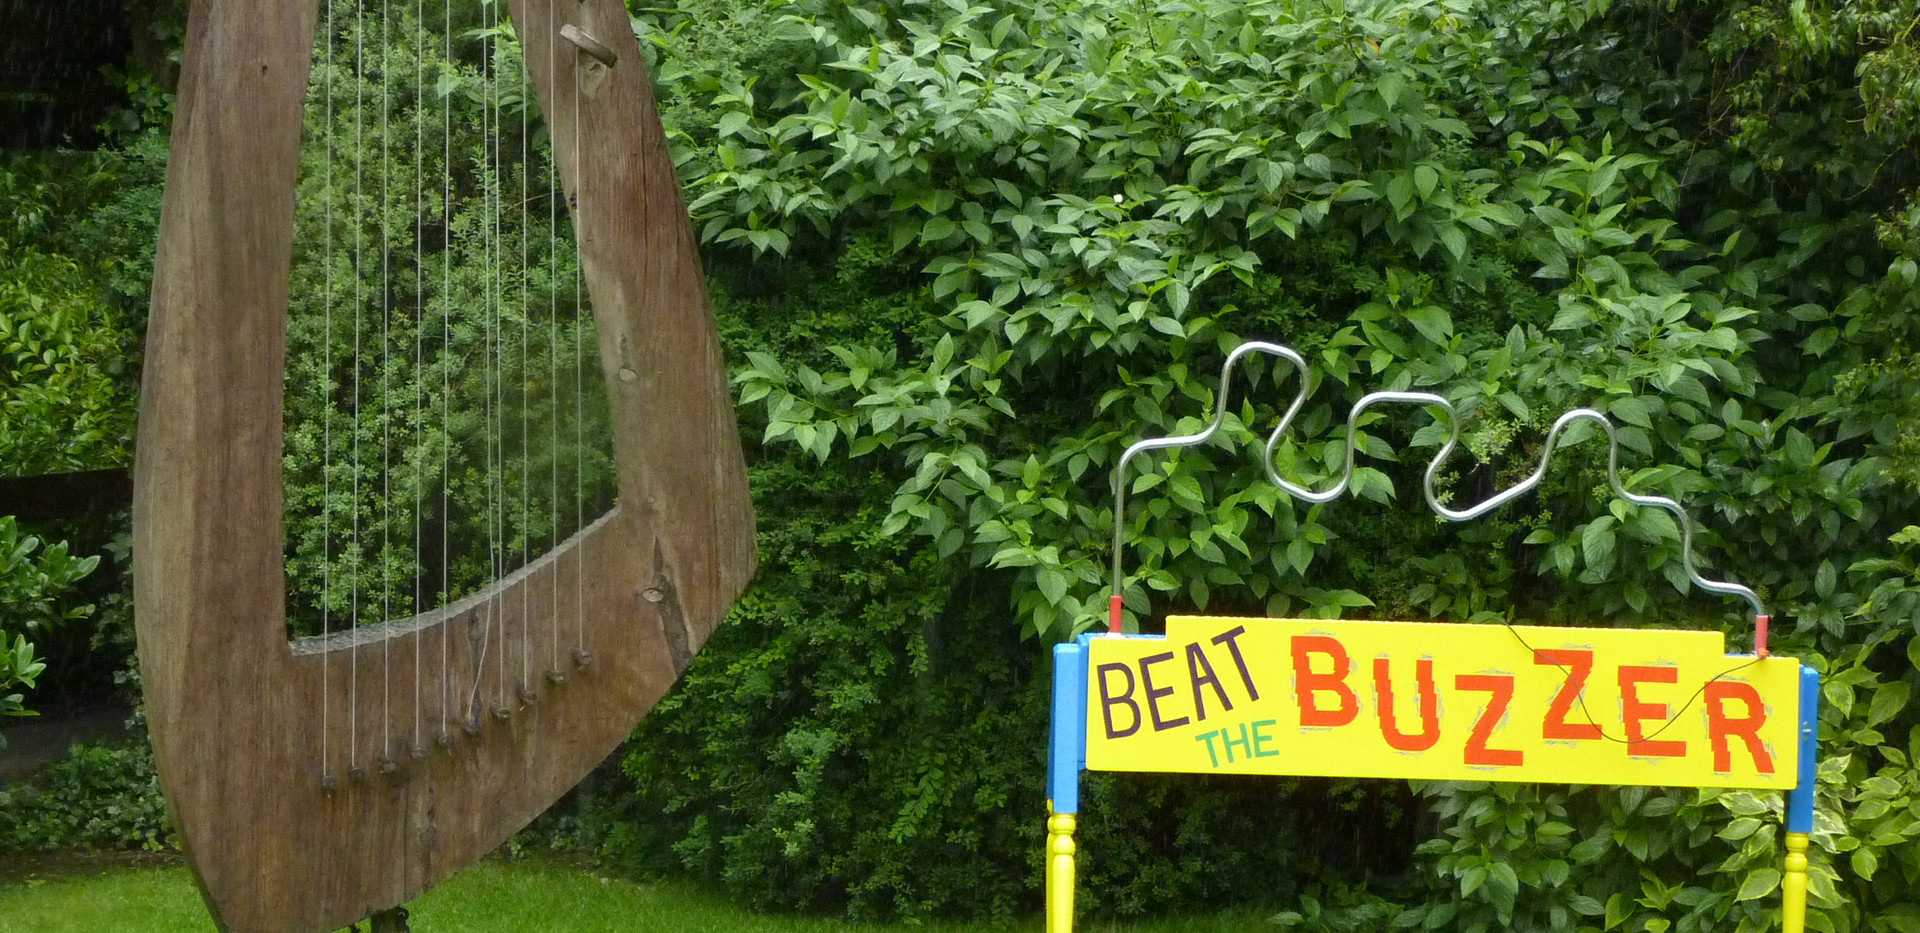 Beat The Buzzer Garden Games Hire Gloucestershire